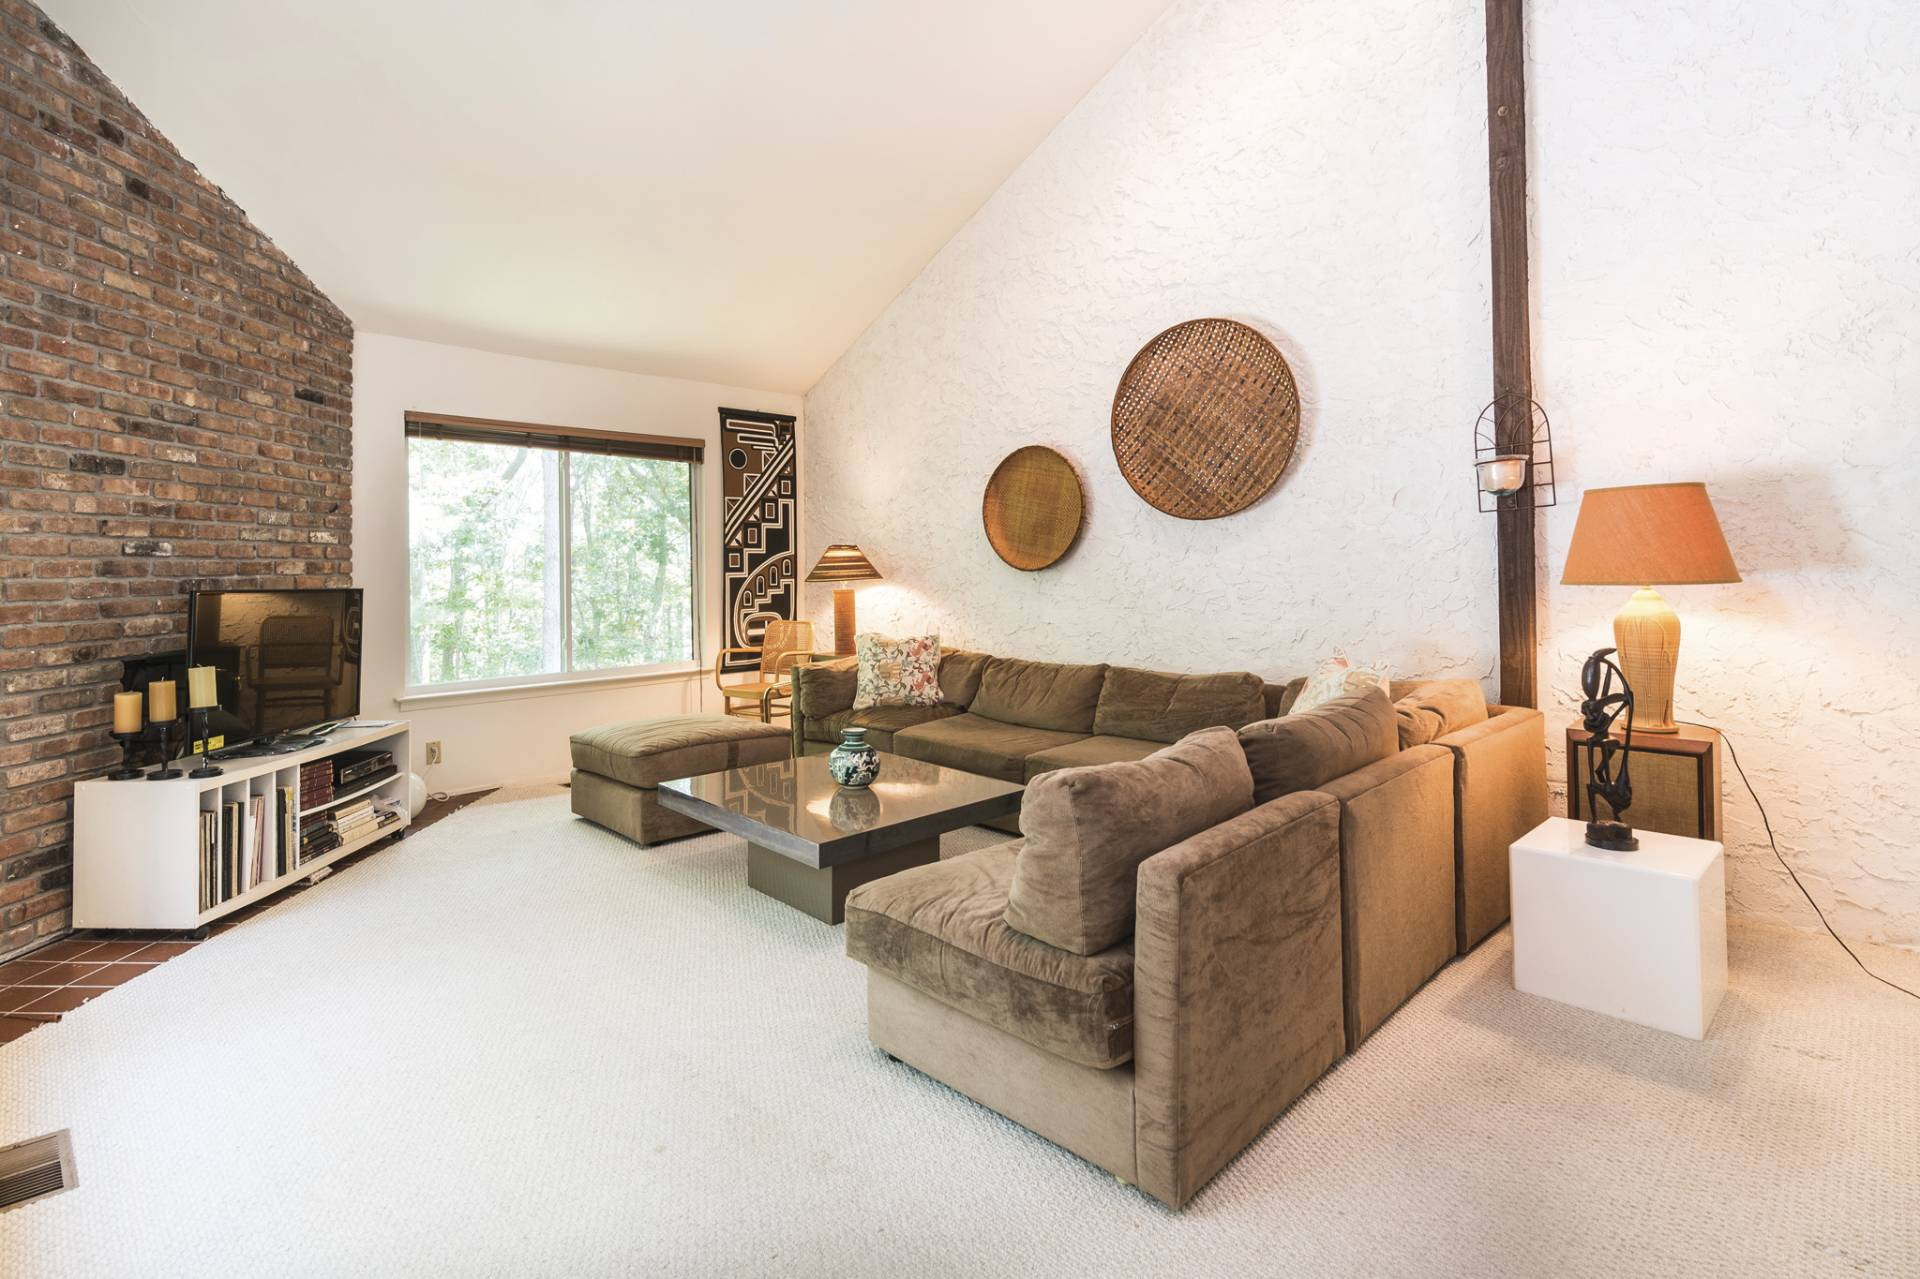 Condominium for Sale at Peaceful / Quiet Treescape Condo 202 Treescape Drive, Cluster 5, Unit 14c, East Hampton, New York